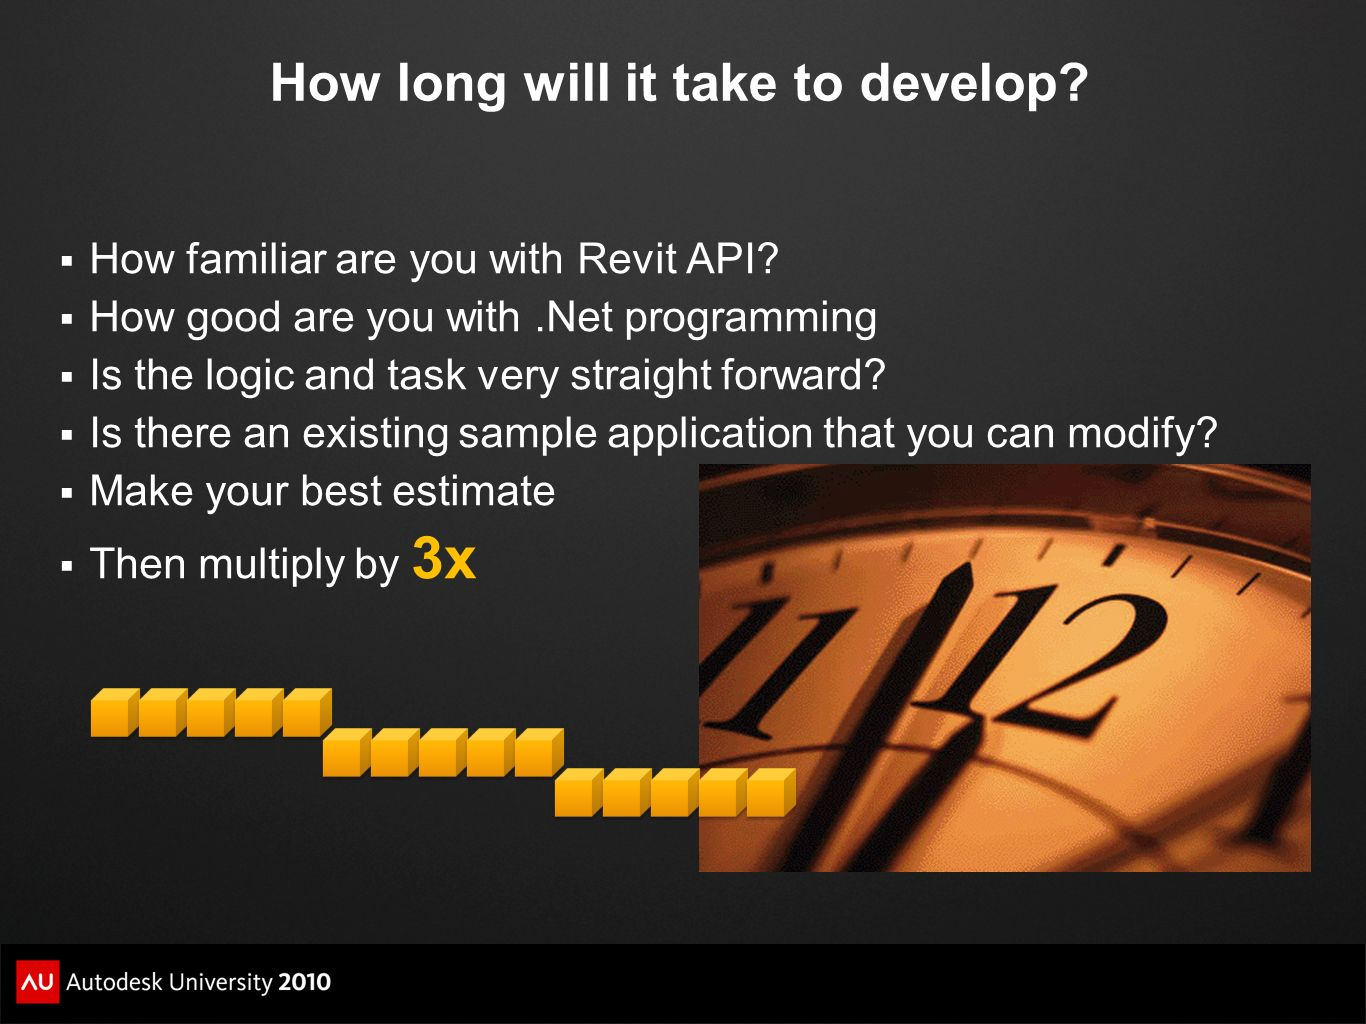 How long will it take to develop